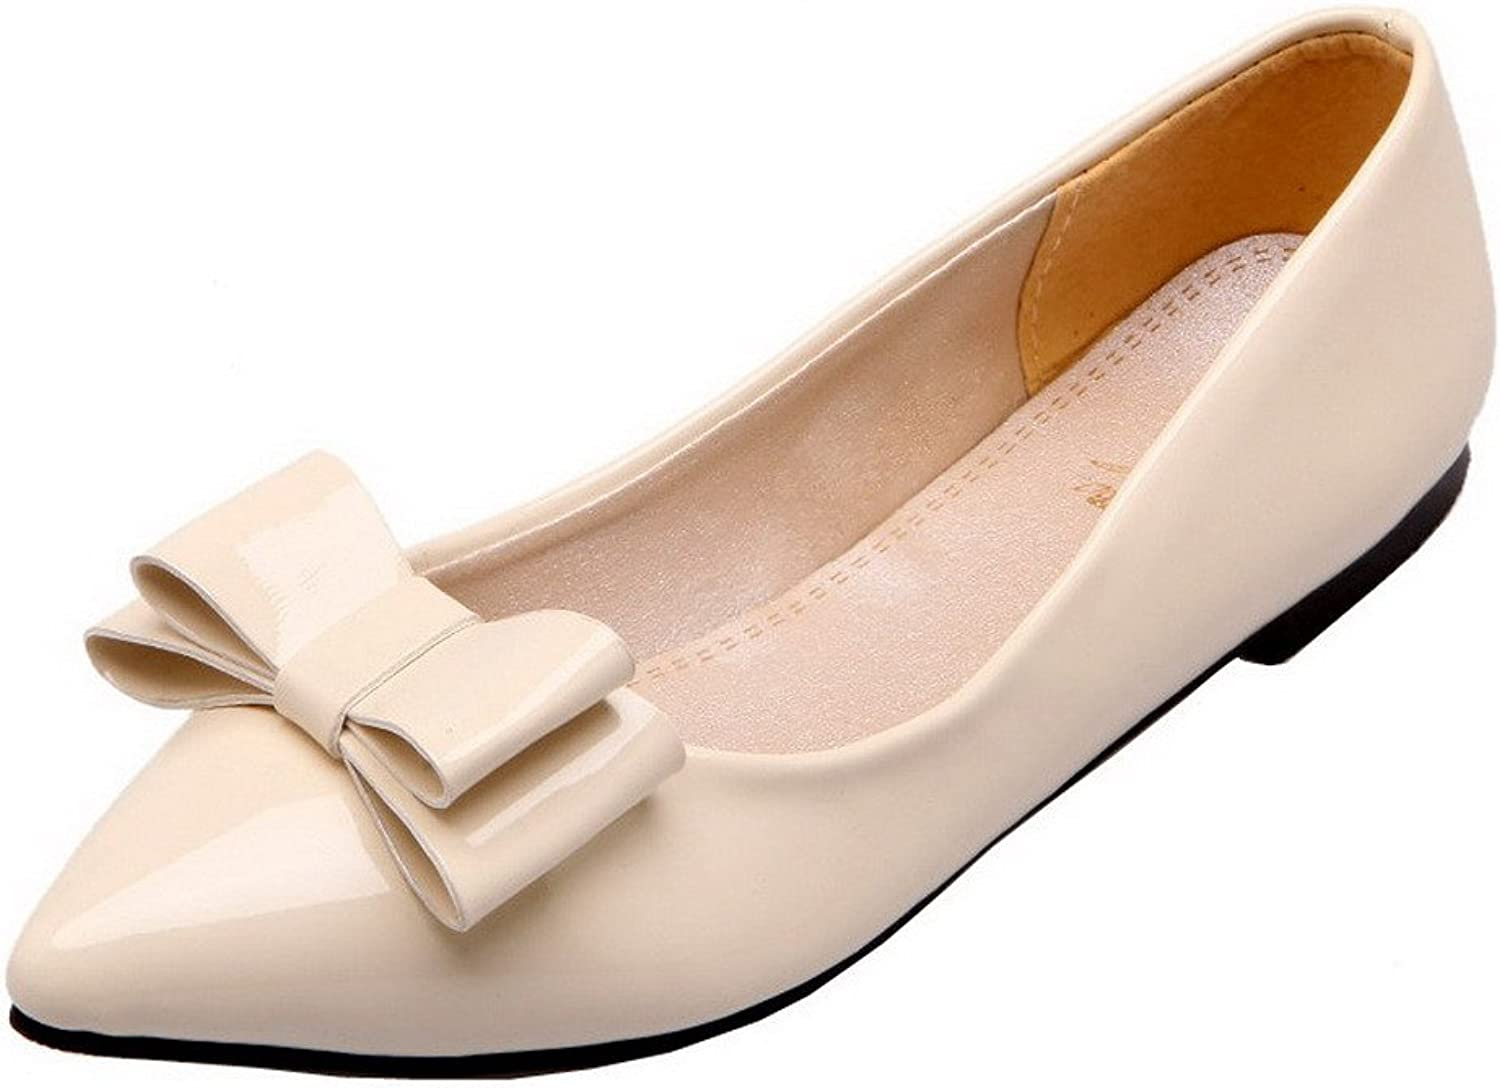 WeenFashion Women's Patent Leather Low-Heels Closed-Toe Pull-On Pumps-shoes